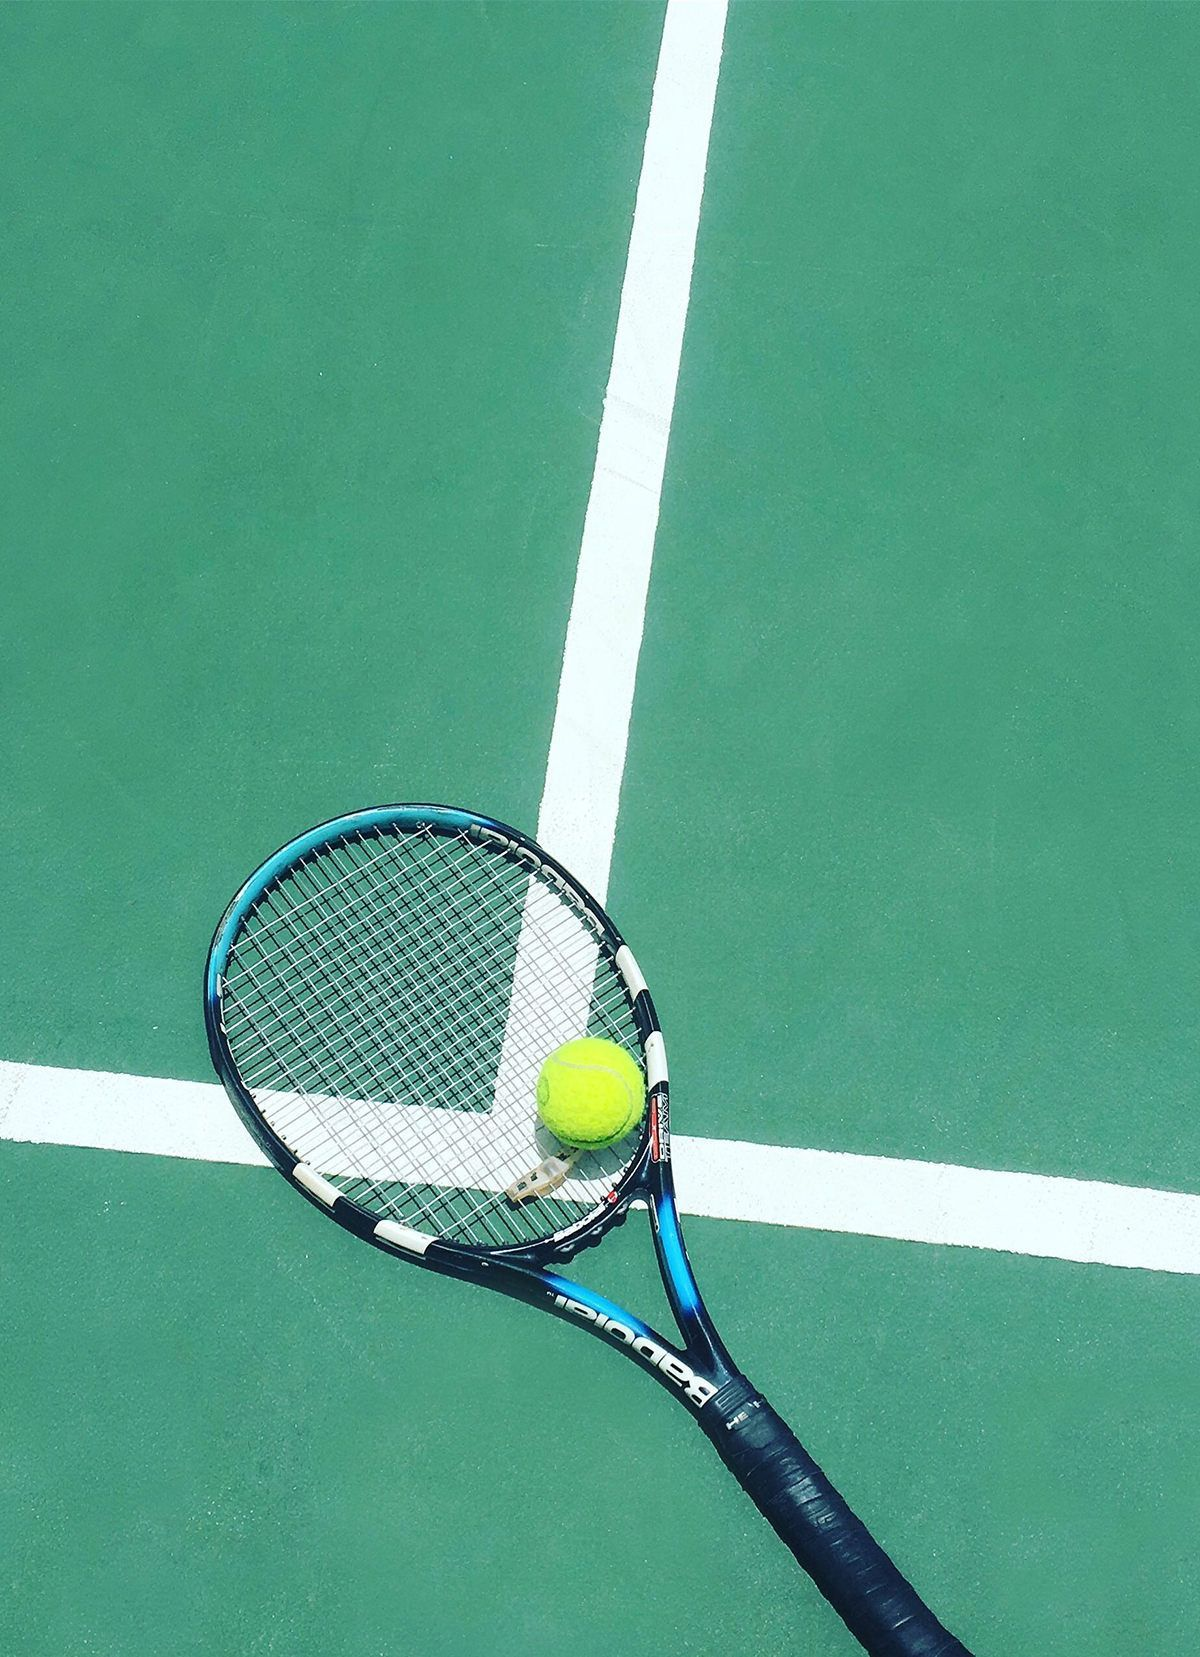 12 Perfect Picks For The Tennis Court In 2020 Tennis Rules Tennis Pictures Tennis Racket